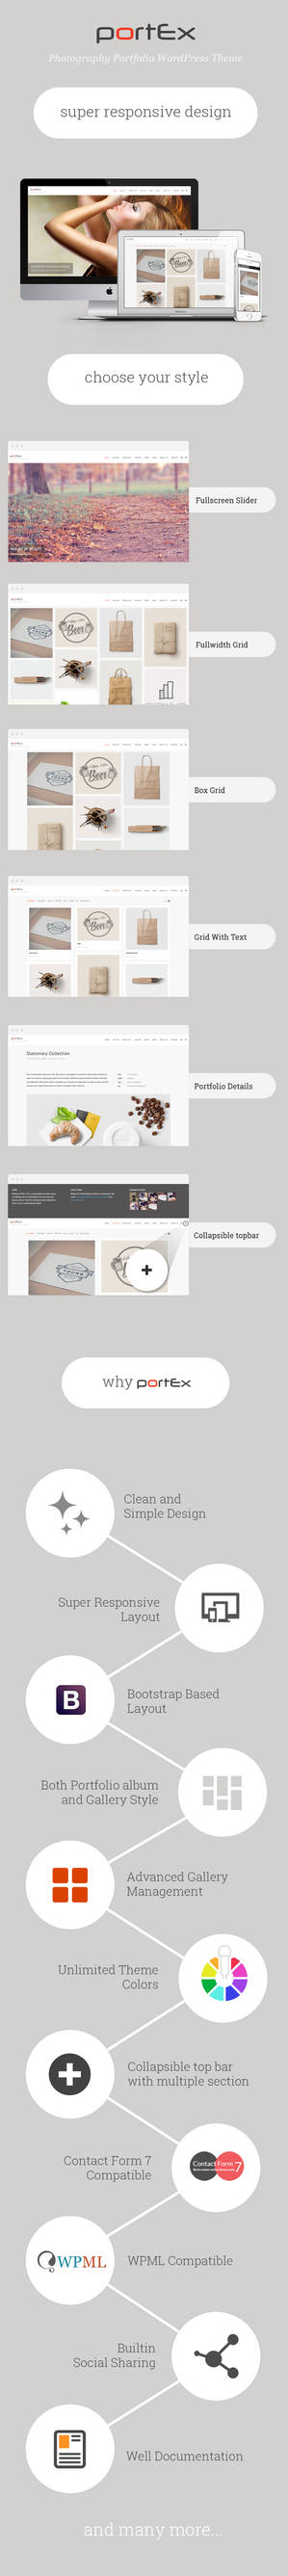 Portex Feature Description by ThemeBucket